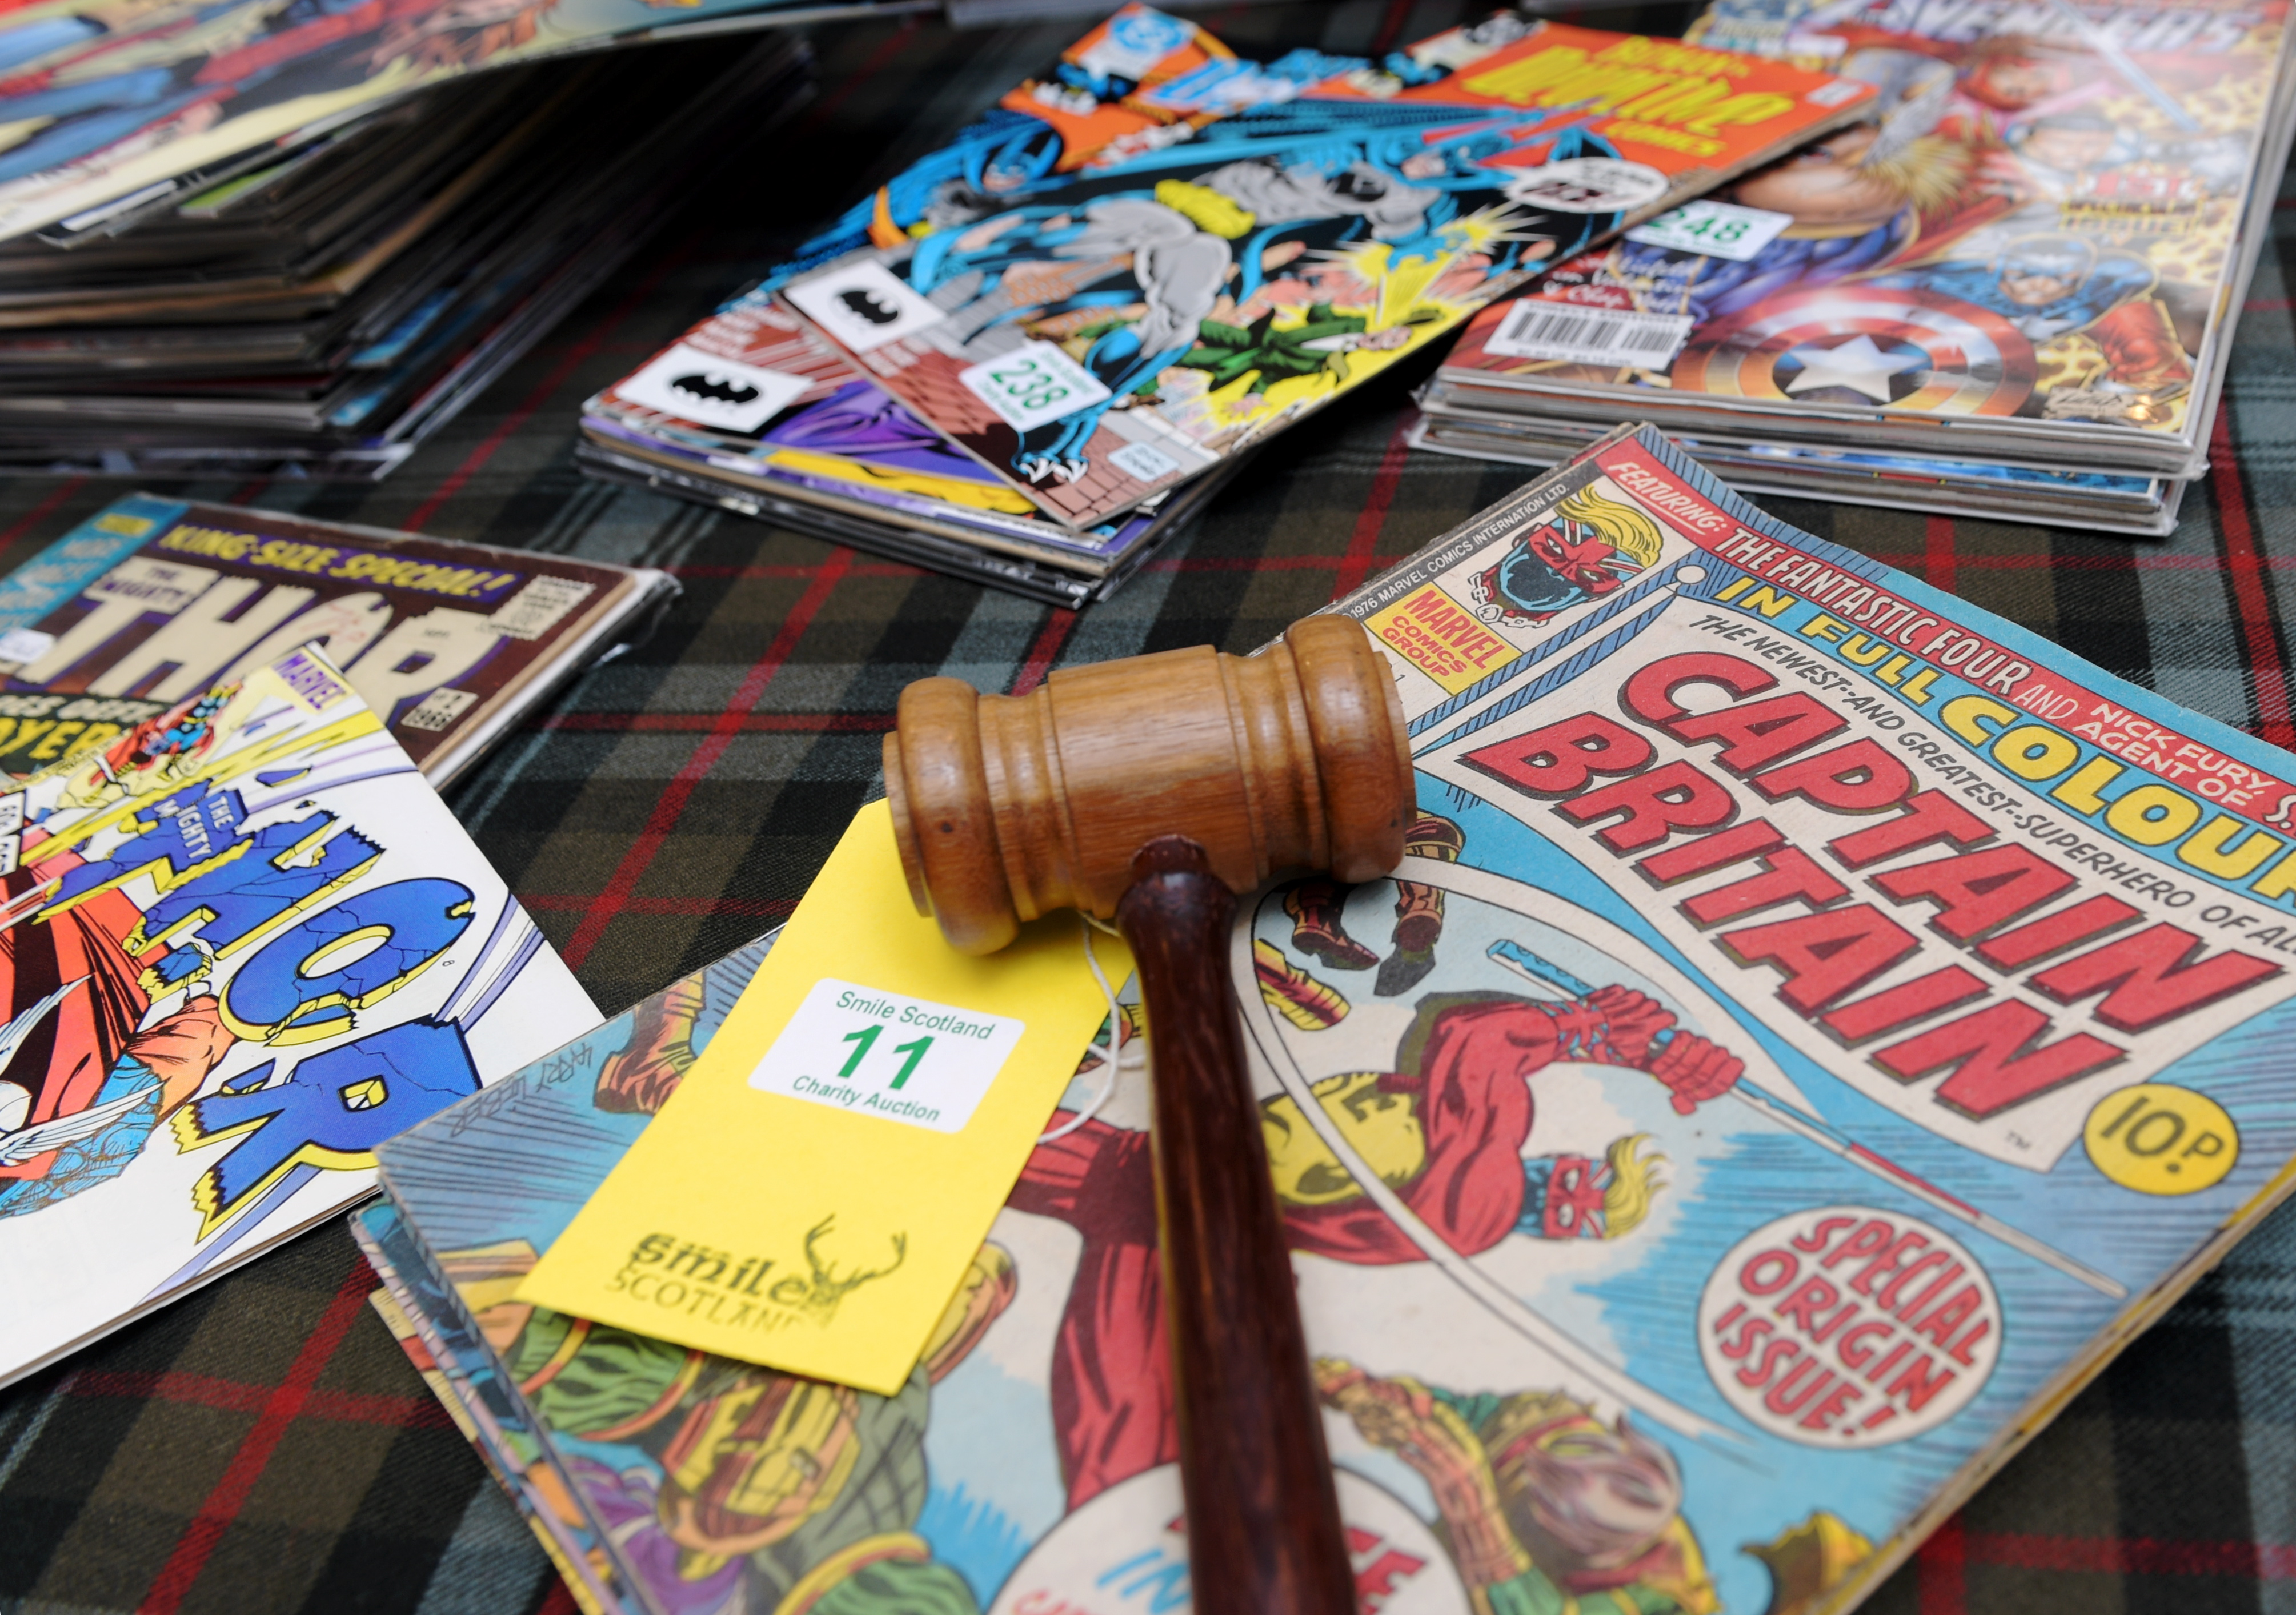 The original comics that will be put up for auction. Picture by KATH FLANNERY